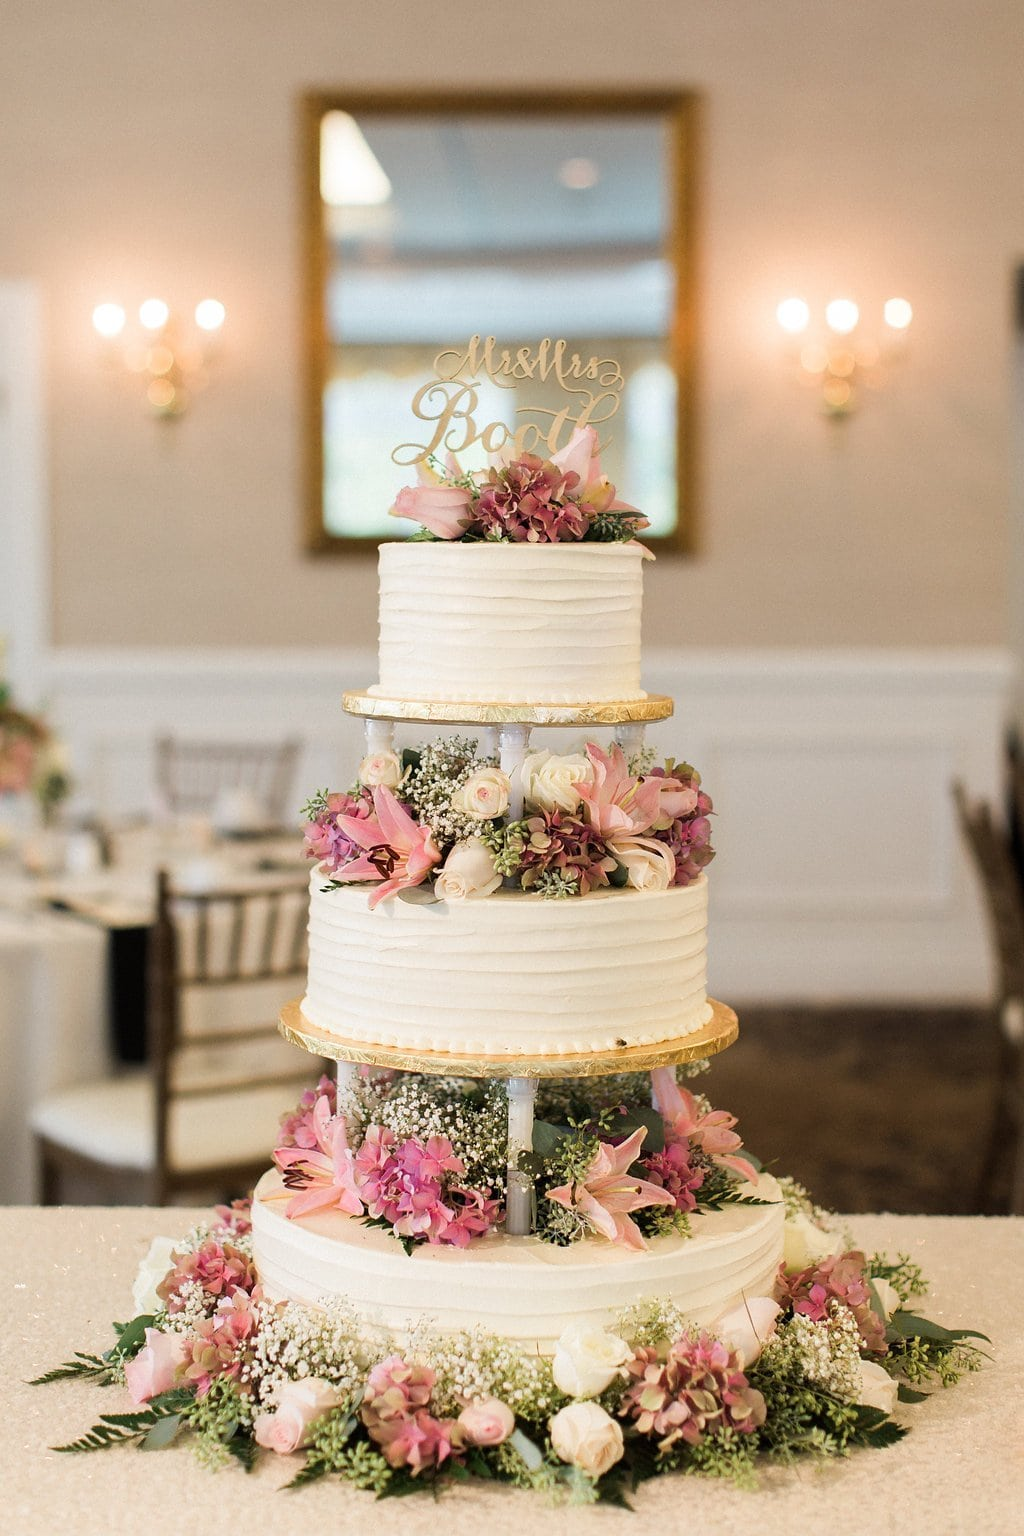 Three tied wedding cake with pink flowers and laser cutout topper